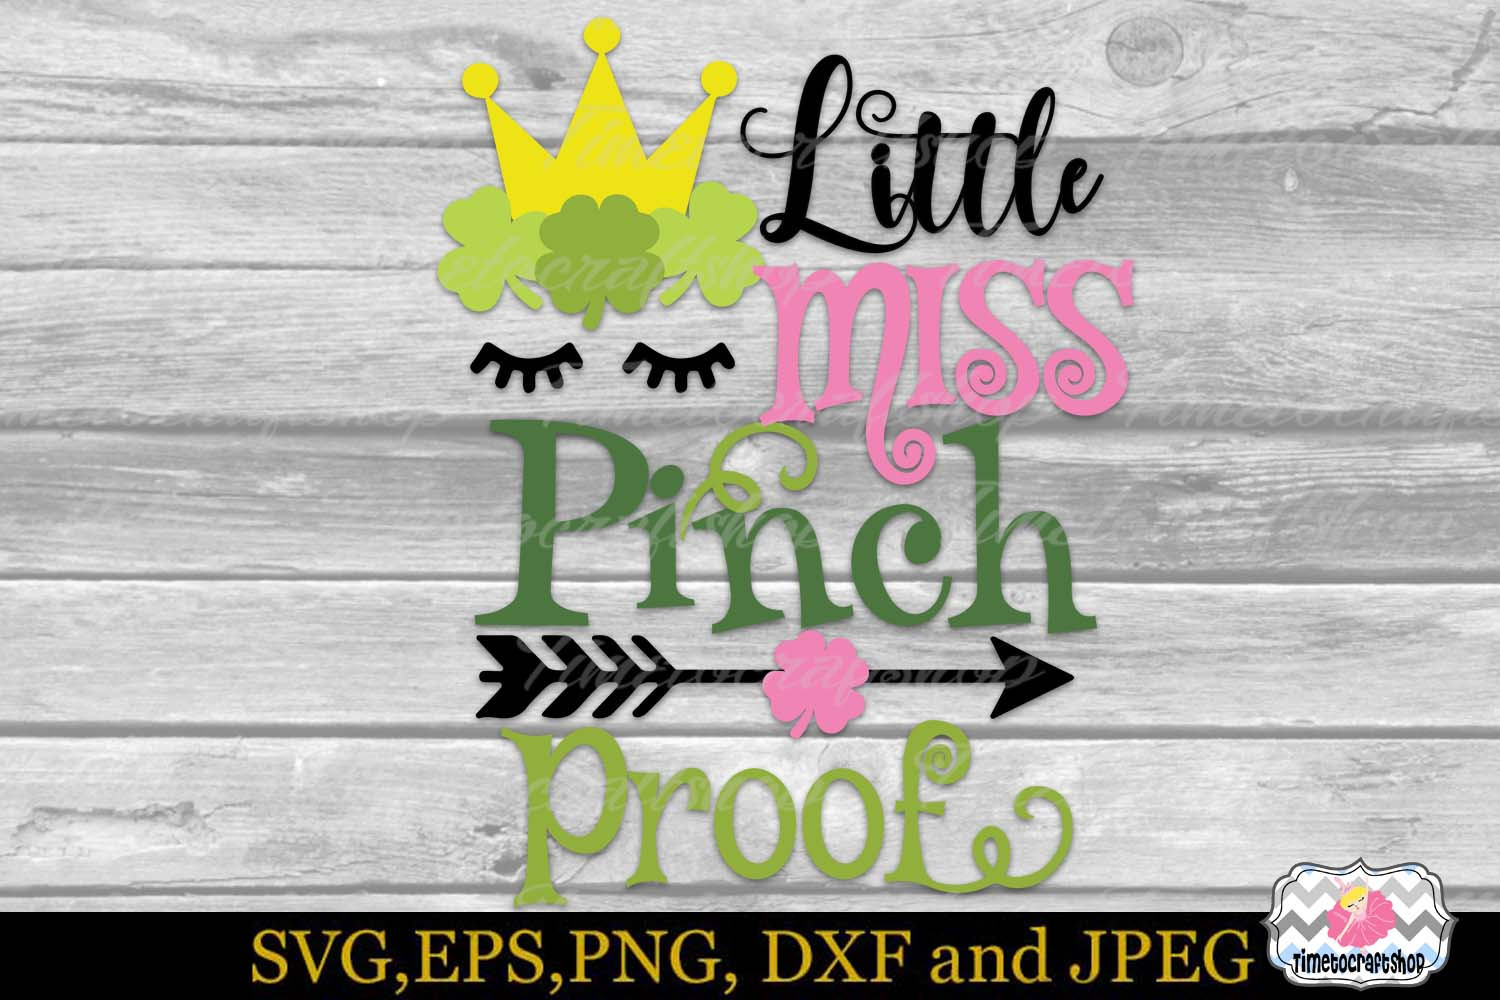 SVG, DXF, PNG St Patrick's Day Little Miss Pinch Proof example image 2